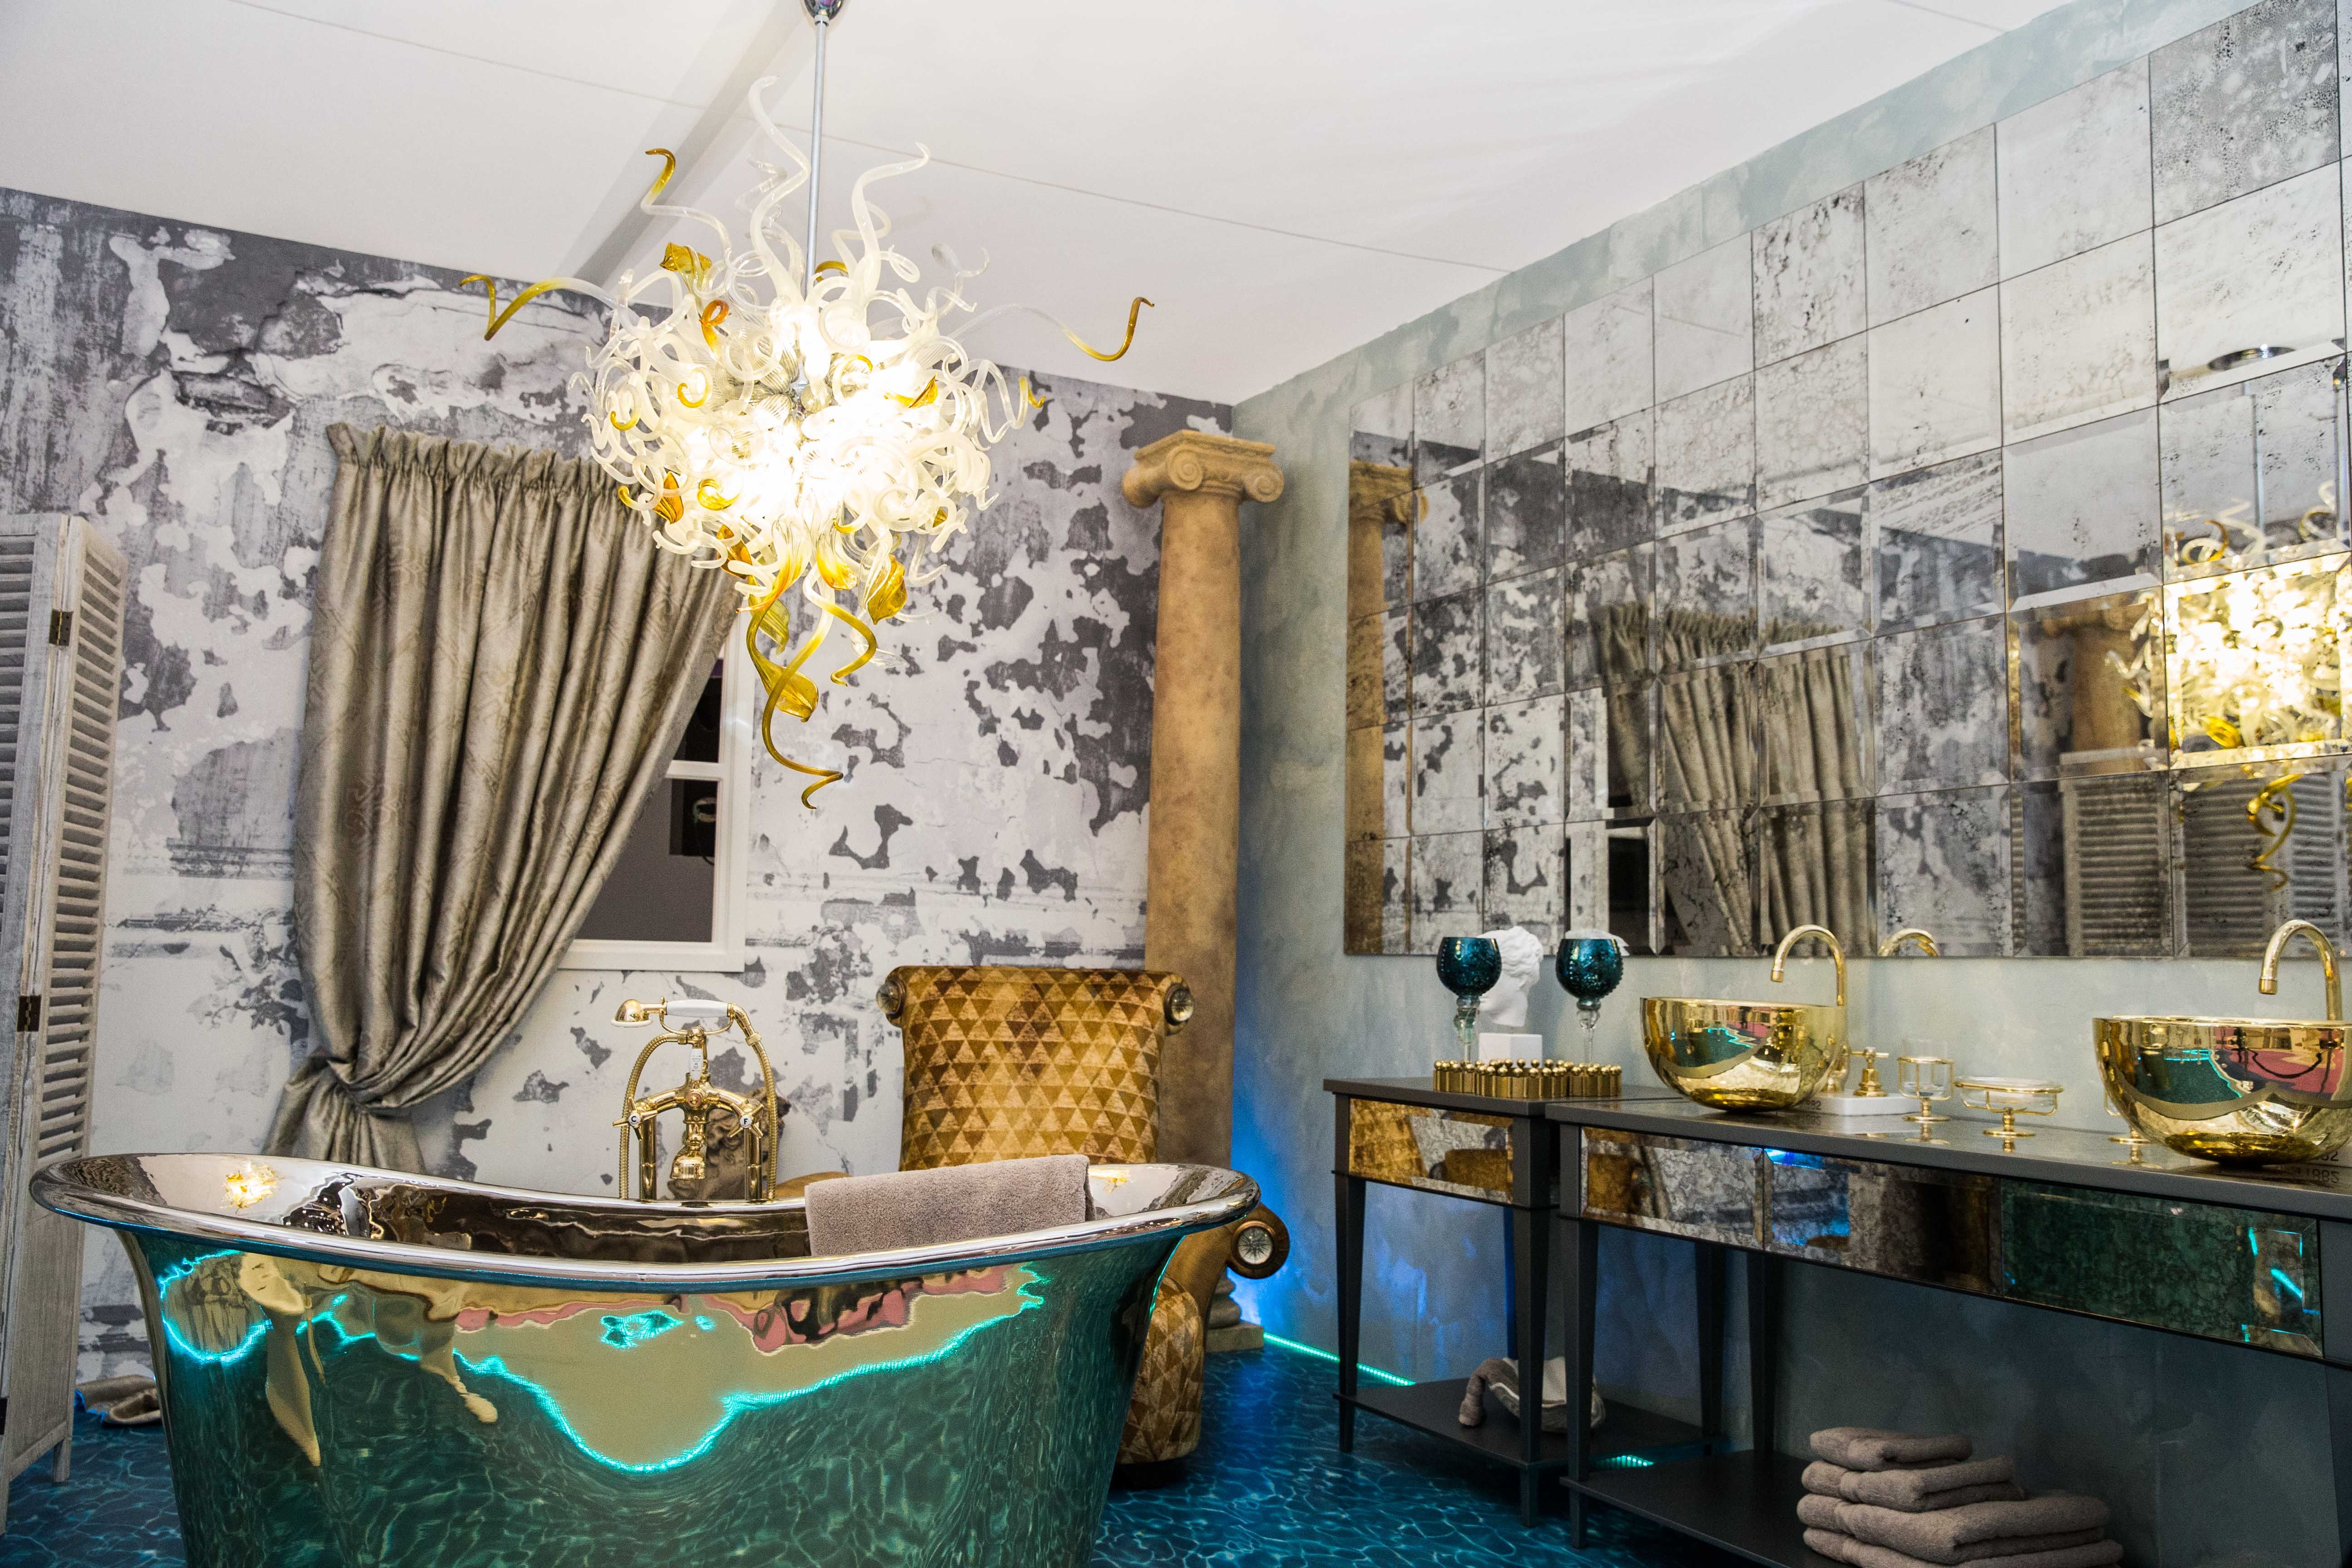 this metallic and crushed velvet bathroom inspired by the lost city included a